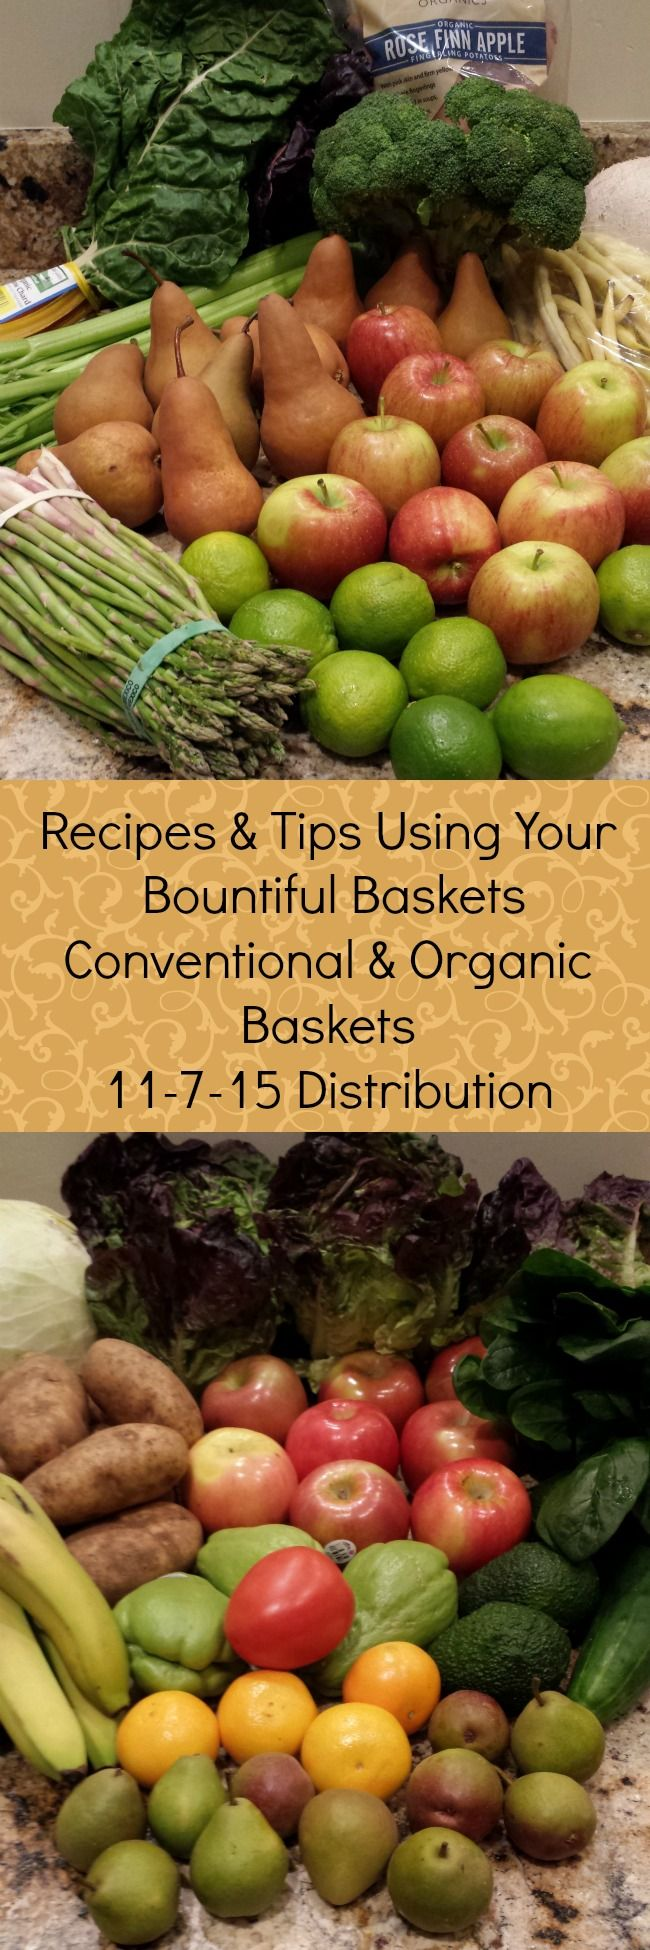 Bountiful Baskets 11-7-15 Pin | A Reinvented Mom, follow the links at the bottom to get to the most recent